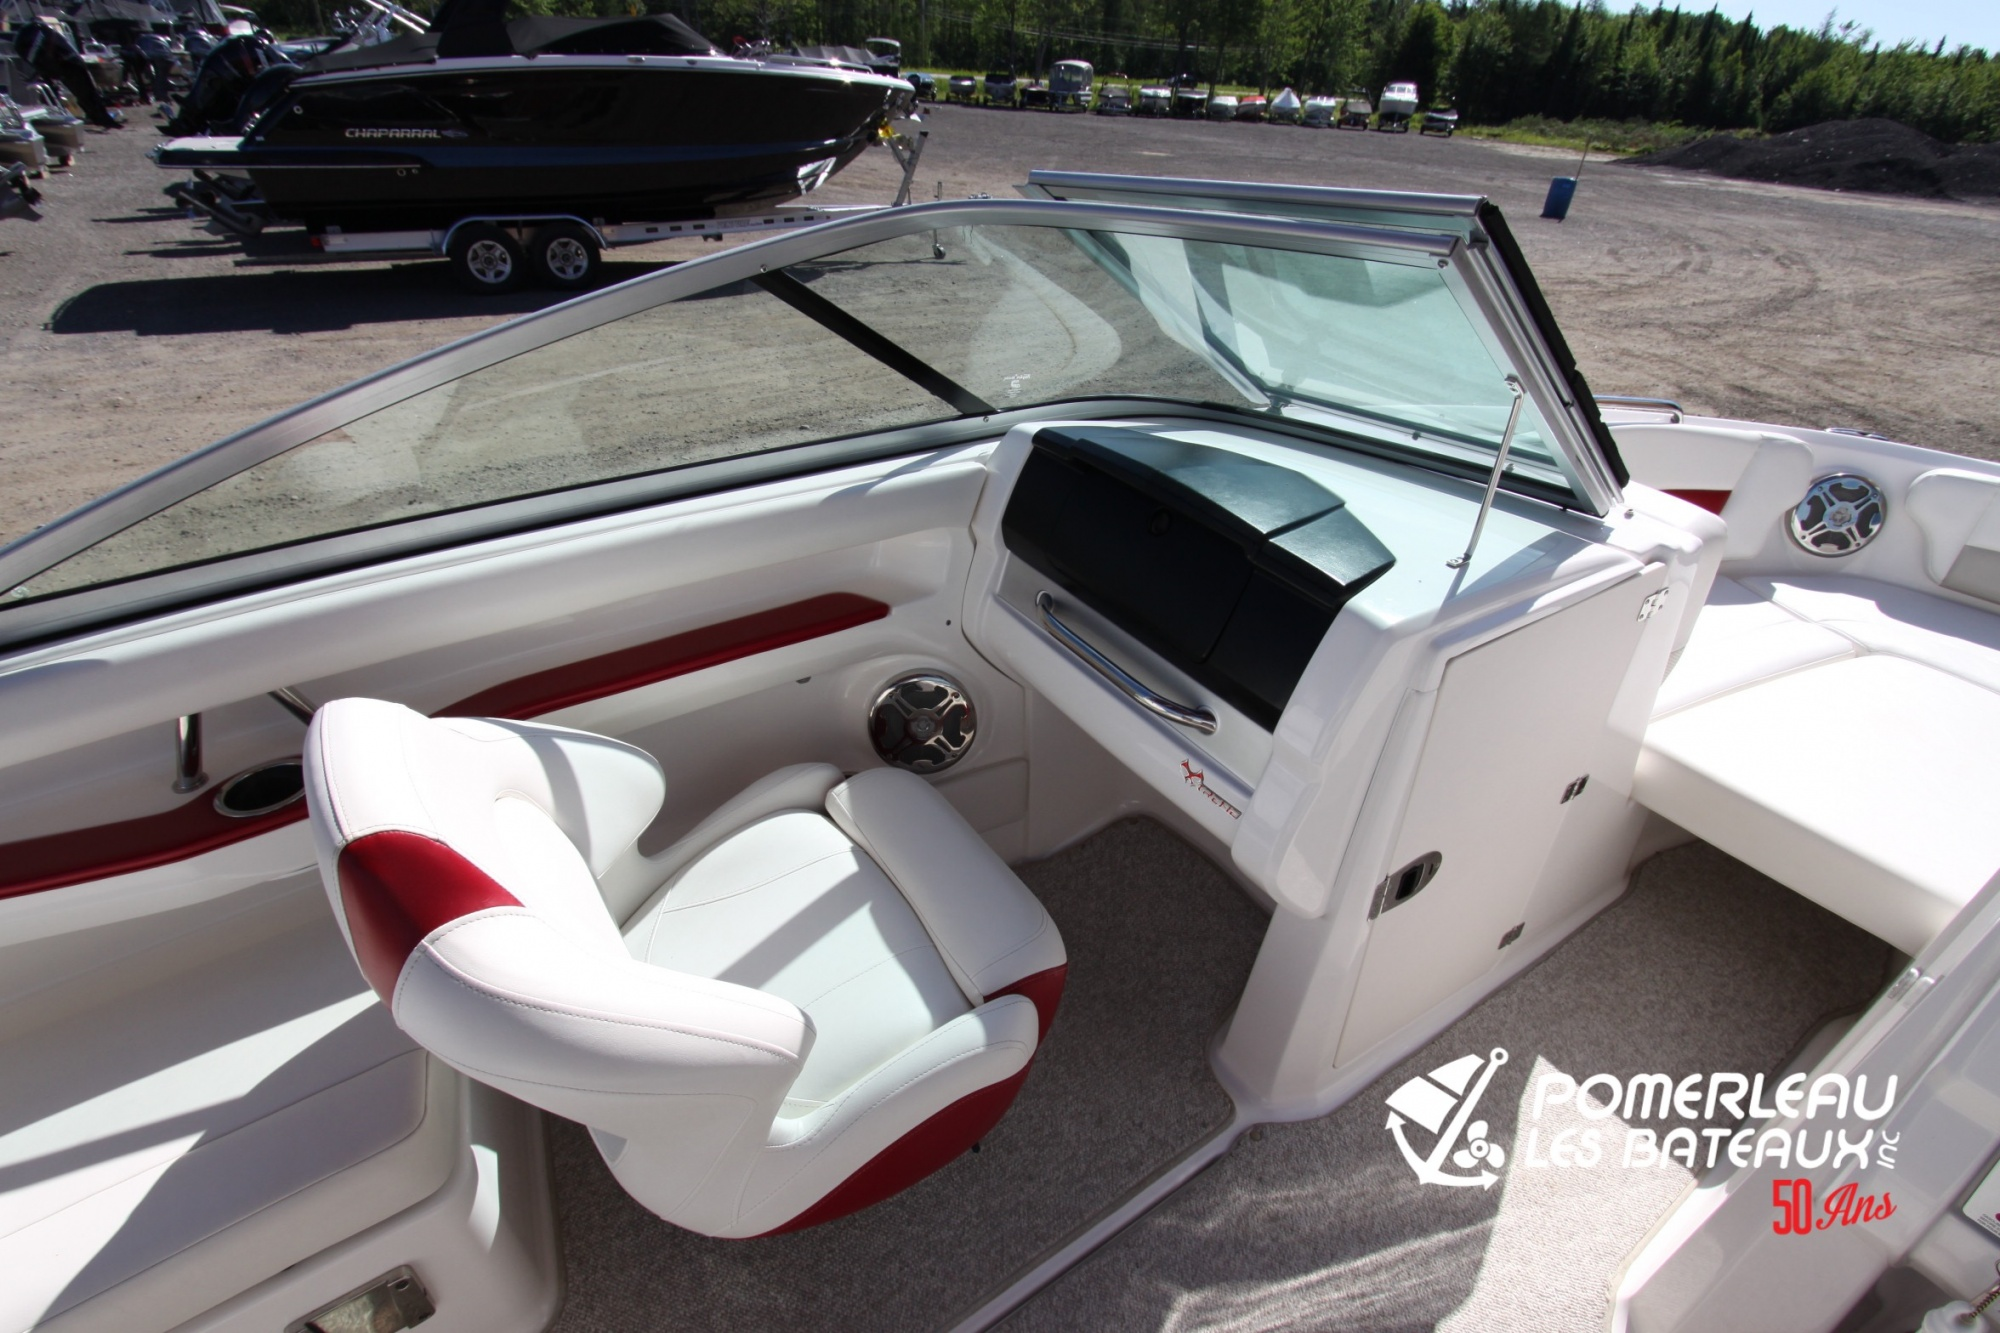 Chaparral 204 Xtreme - IMG_0613